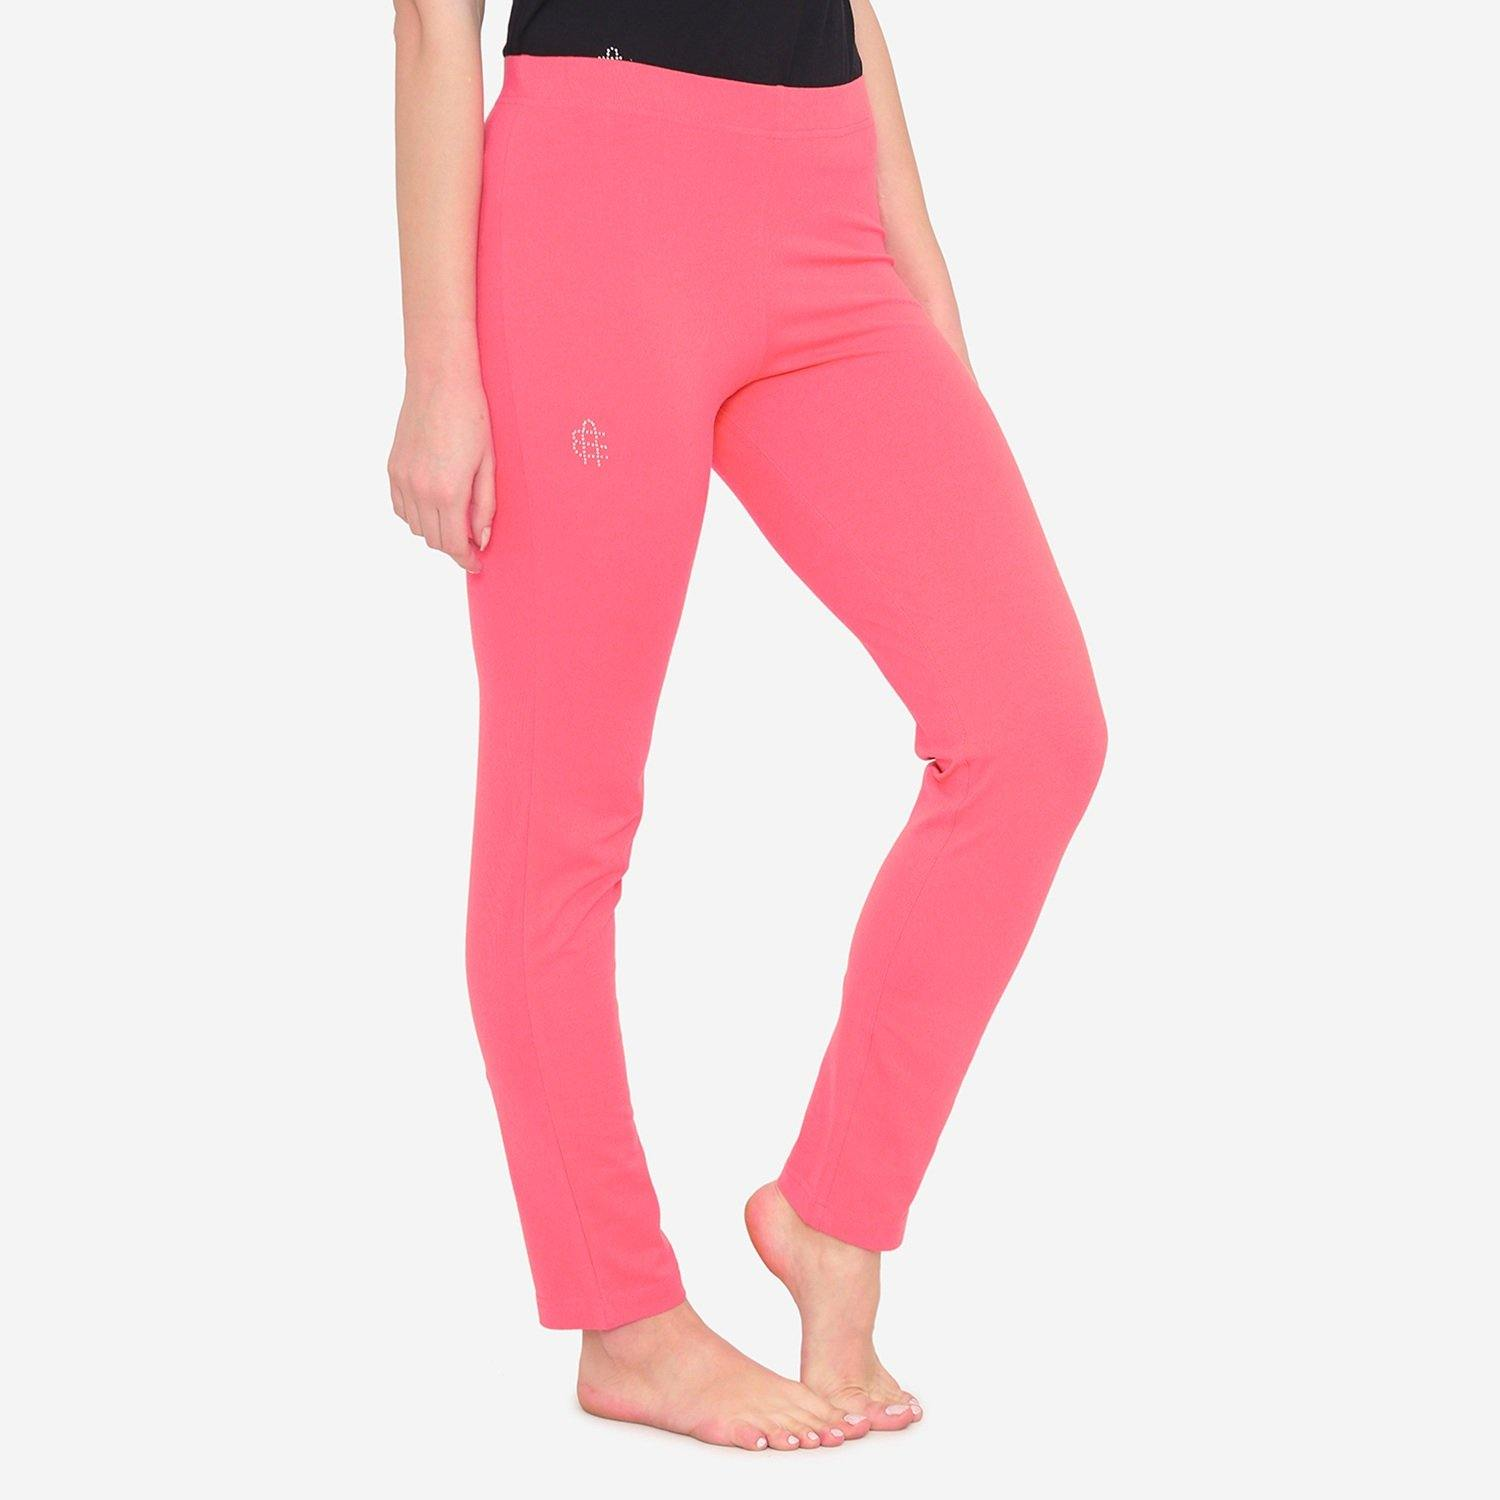 Women's Comfy Classy Plain Lower For Summer - Coral